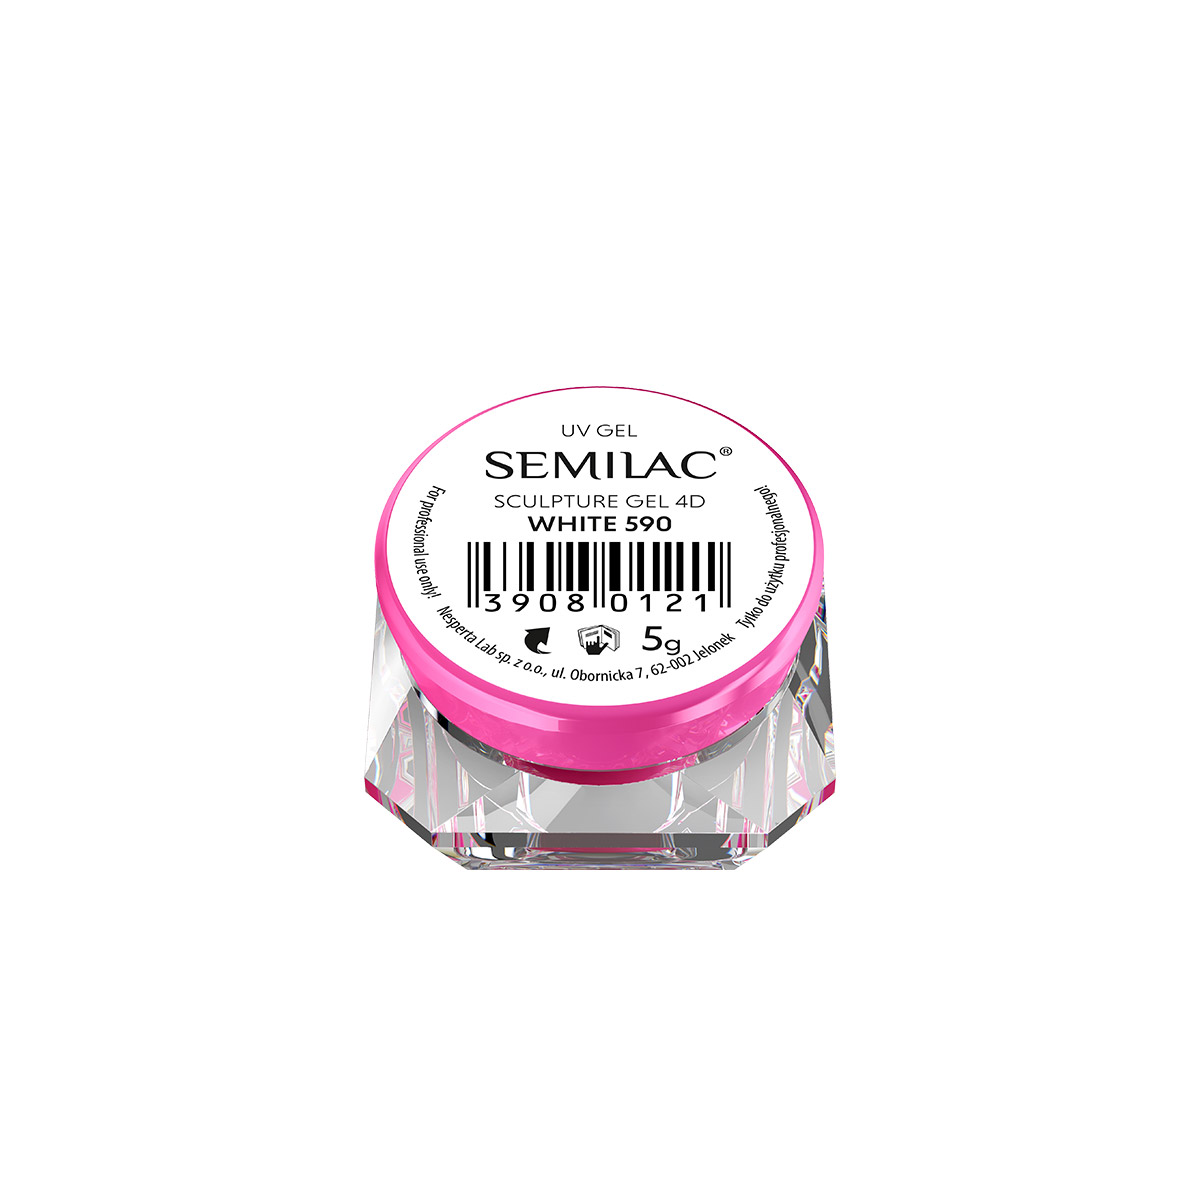 590 Semilac Sculpture Gel 4D White 5 g